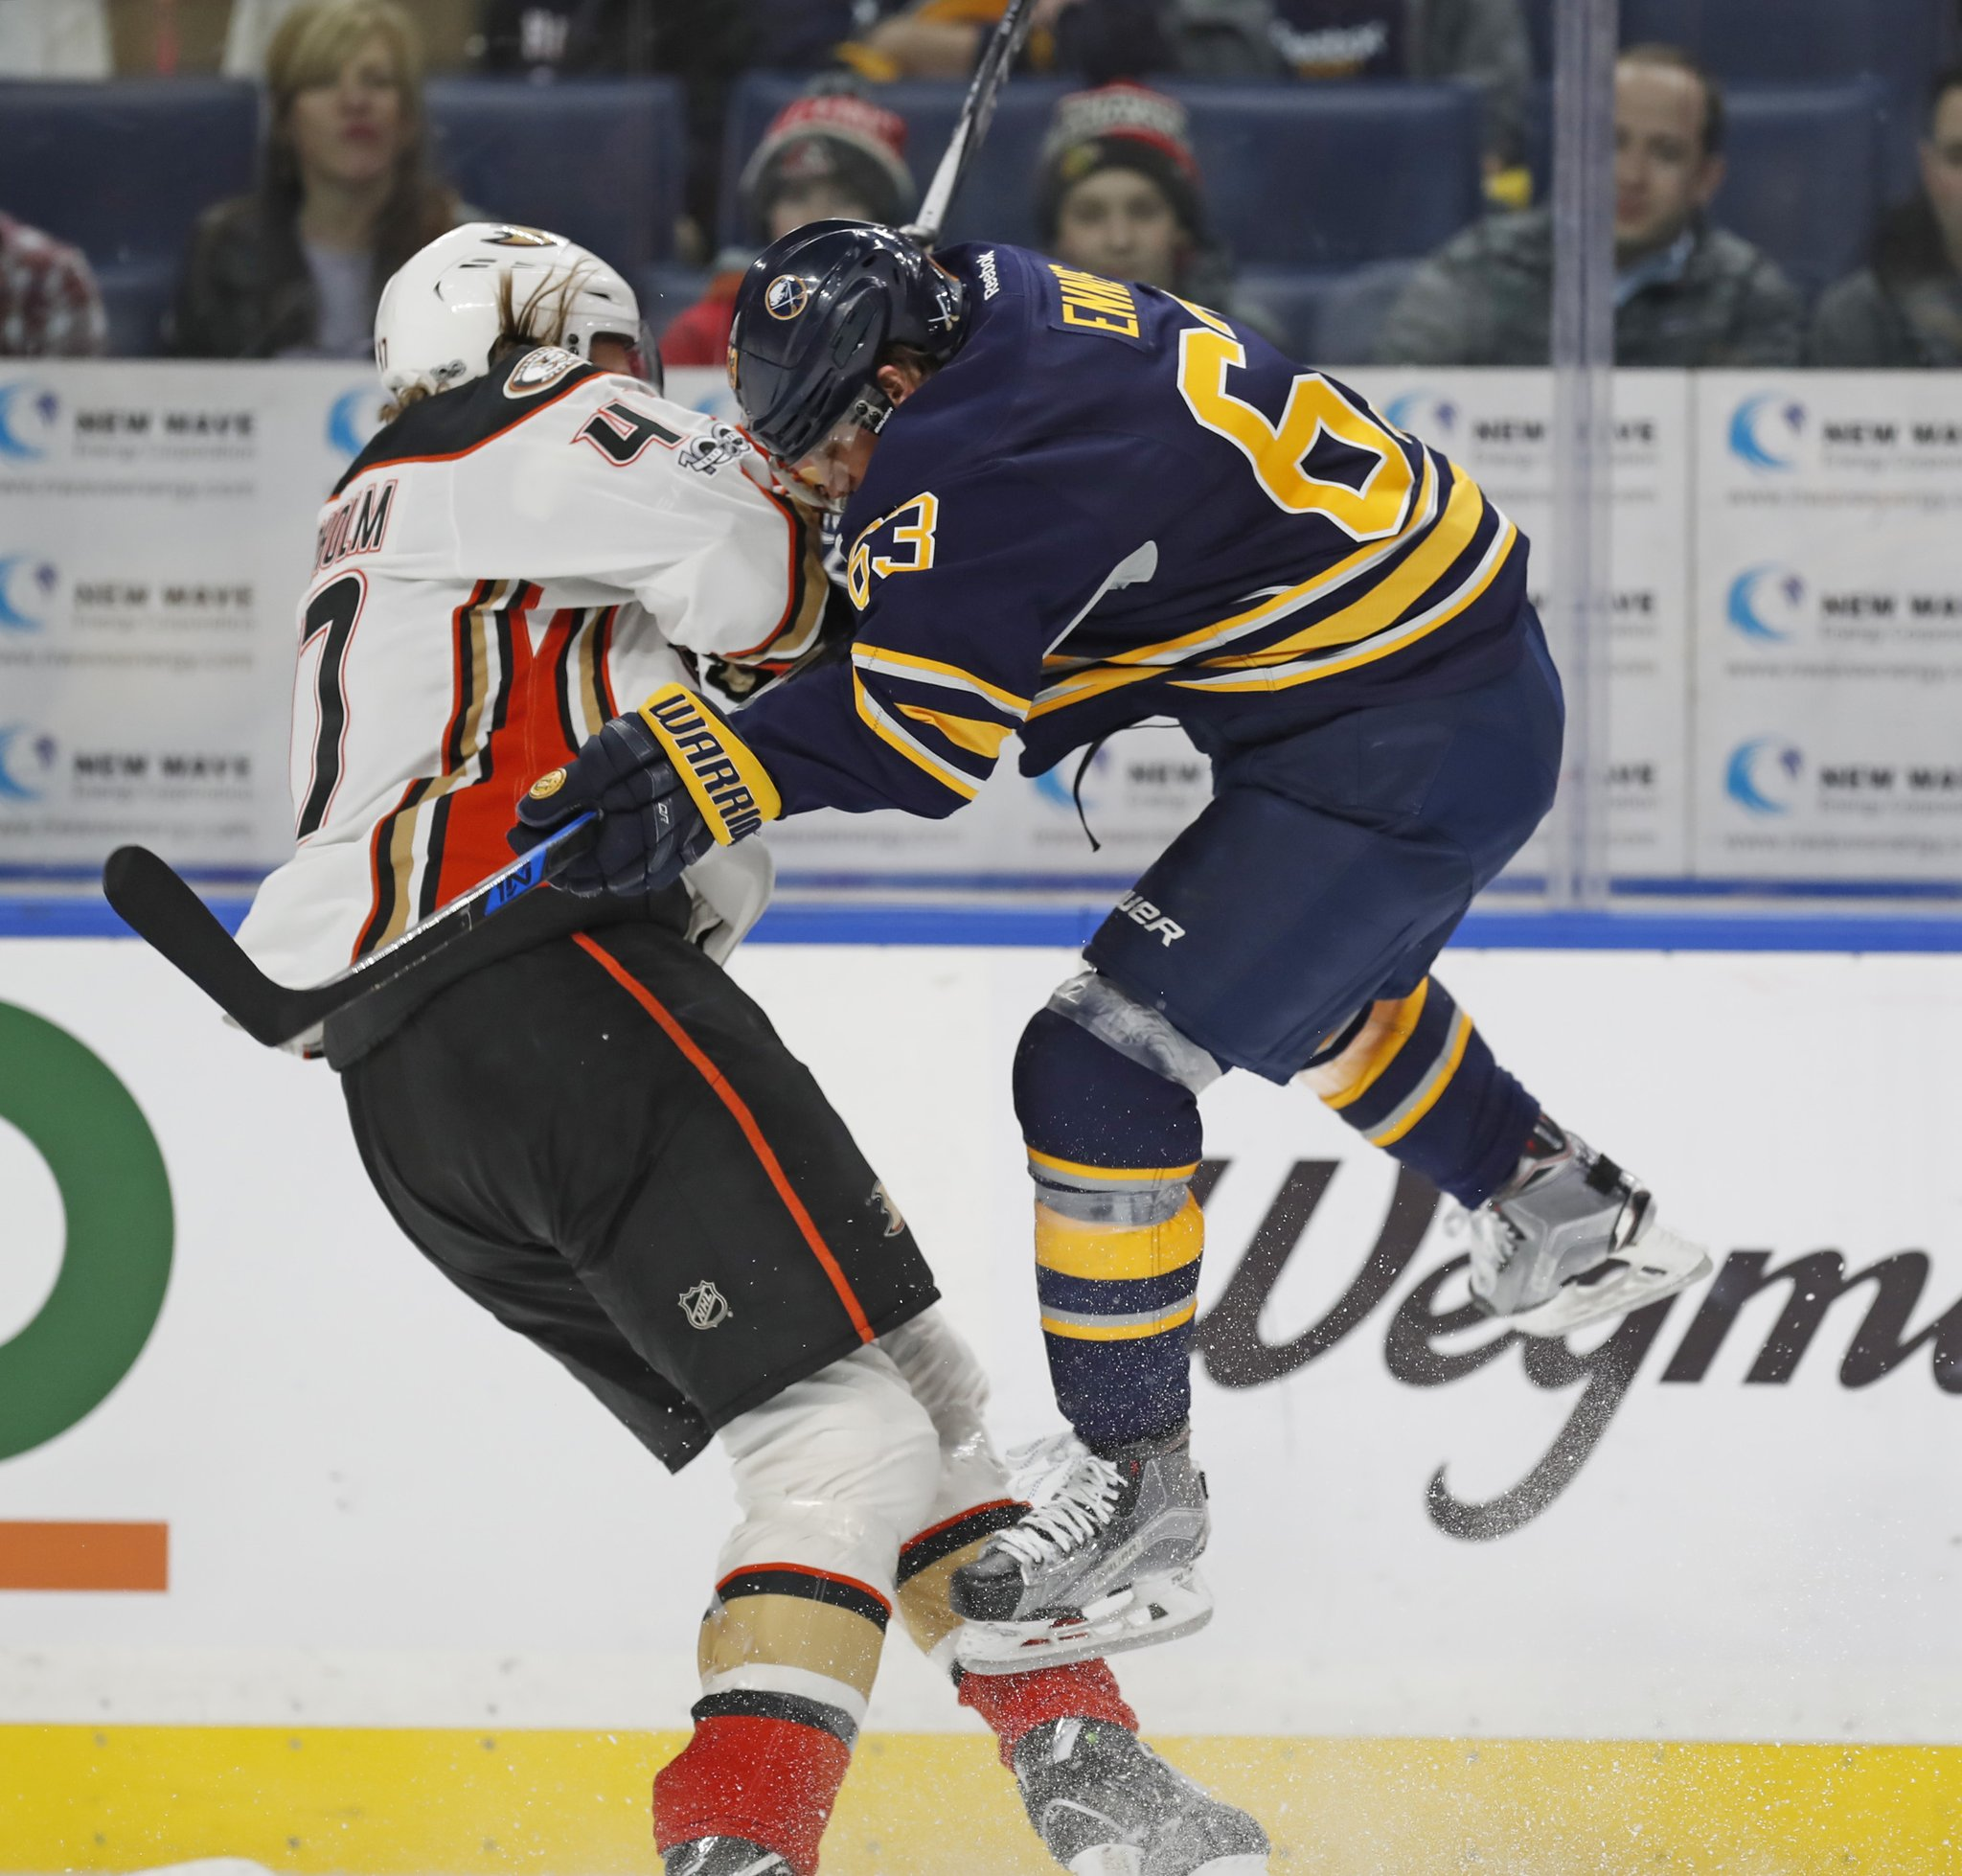 The Sabres' Tyler Ennis puts a big hit on Anaheim's Hampus Lindholm. (Harry Scull Jr./Buffalo News)